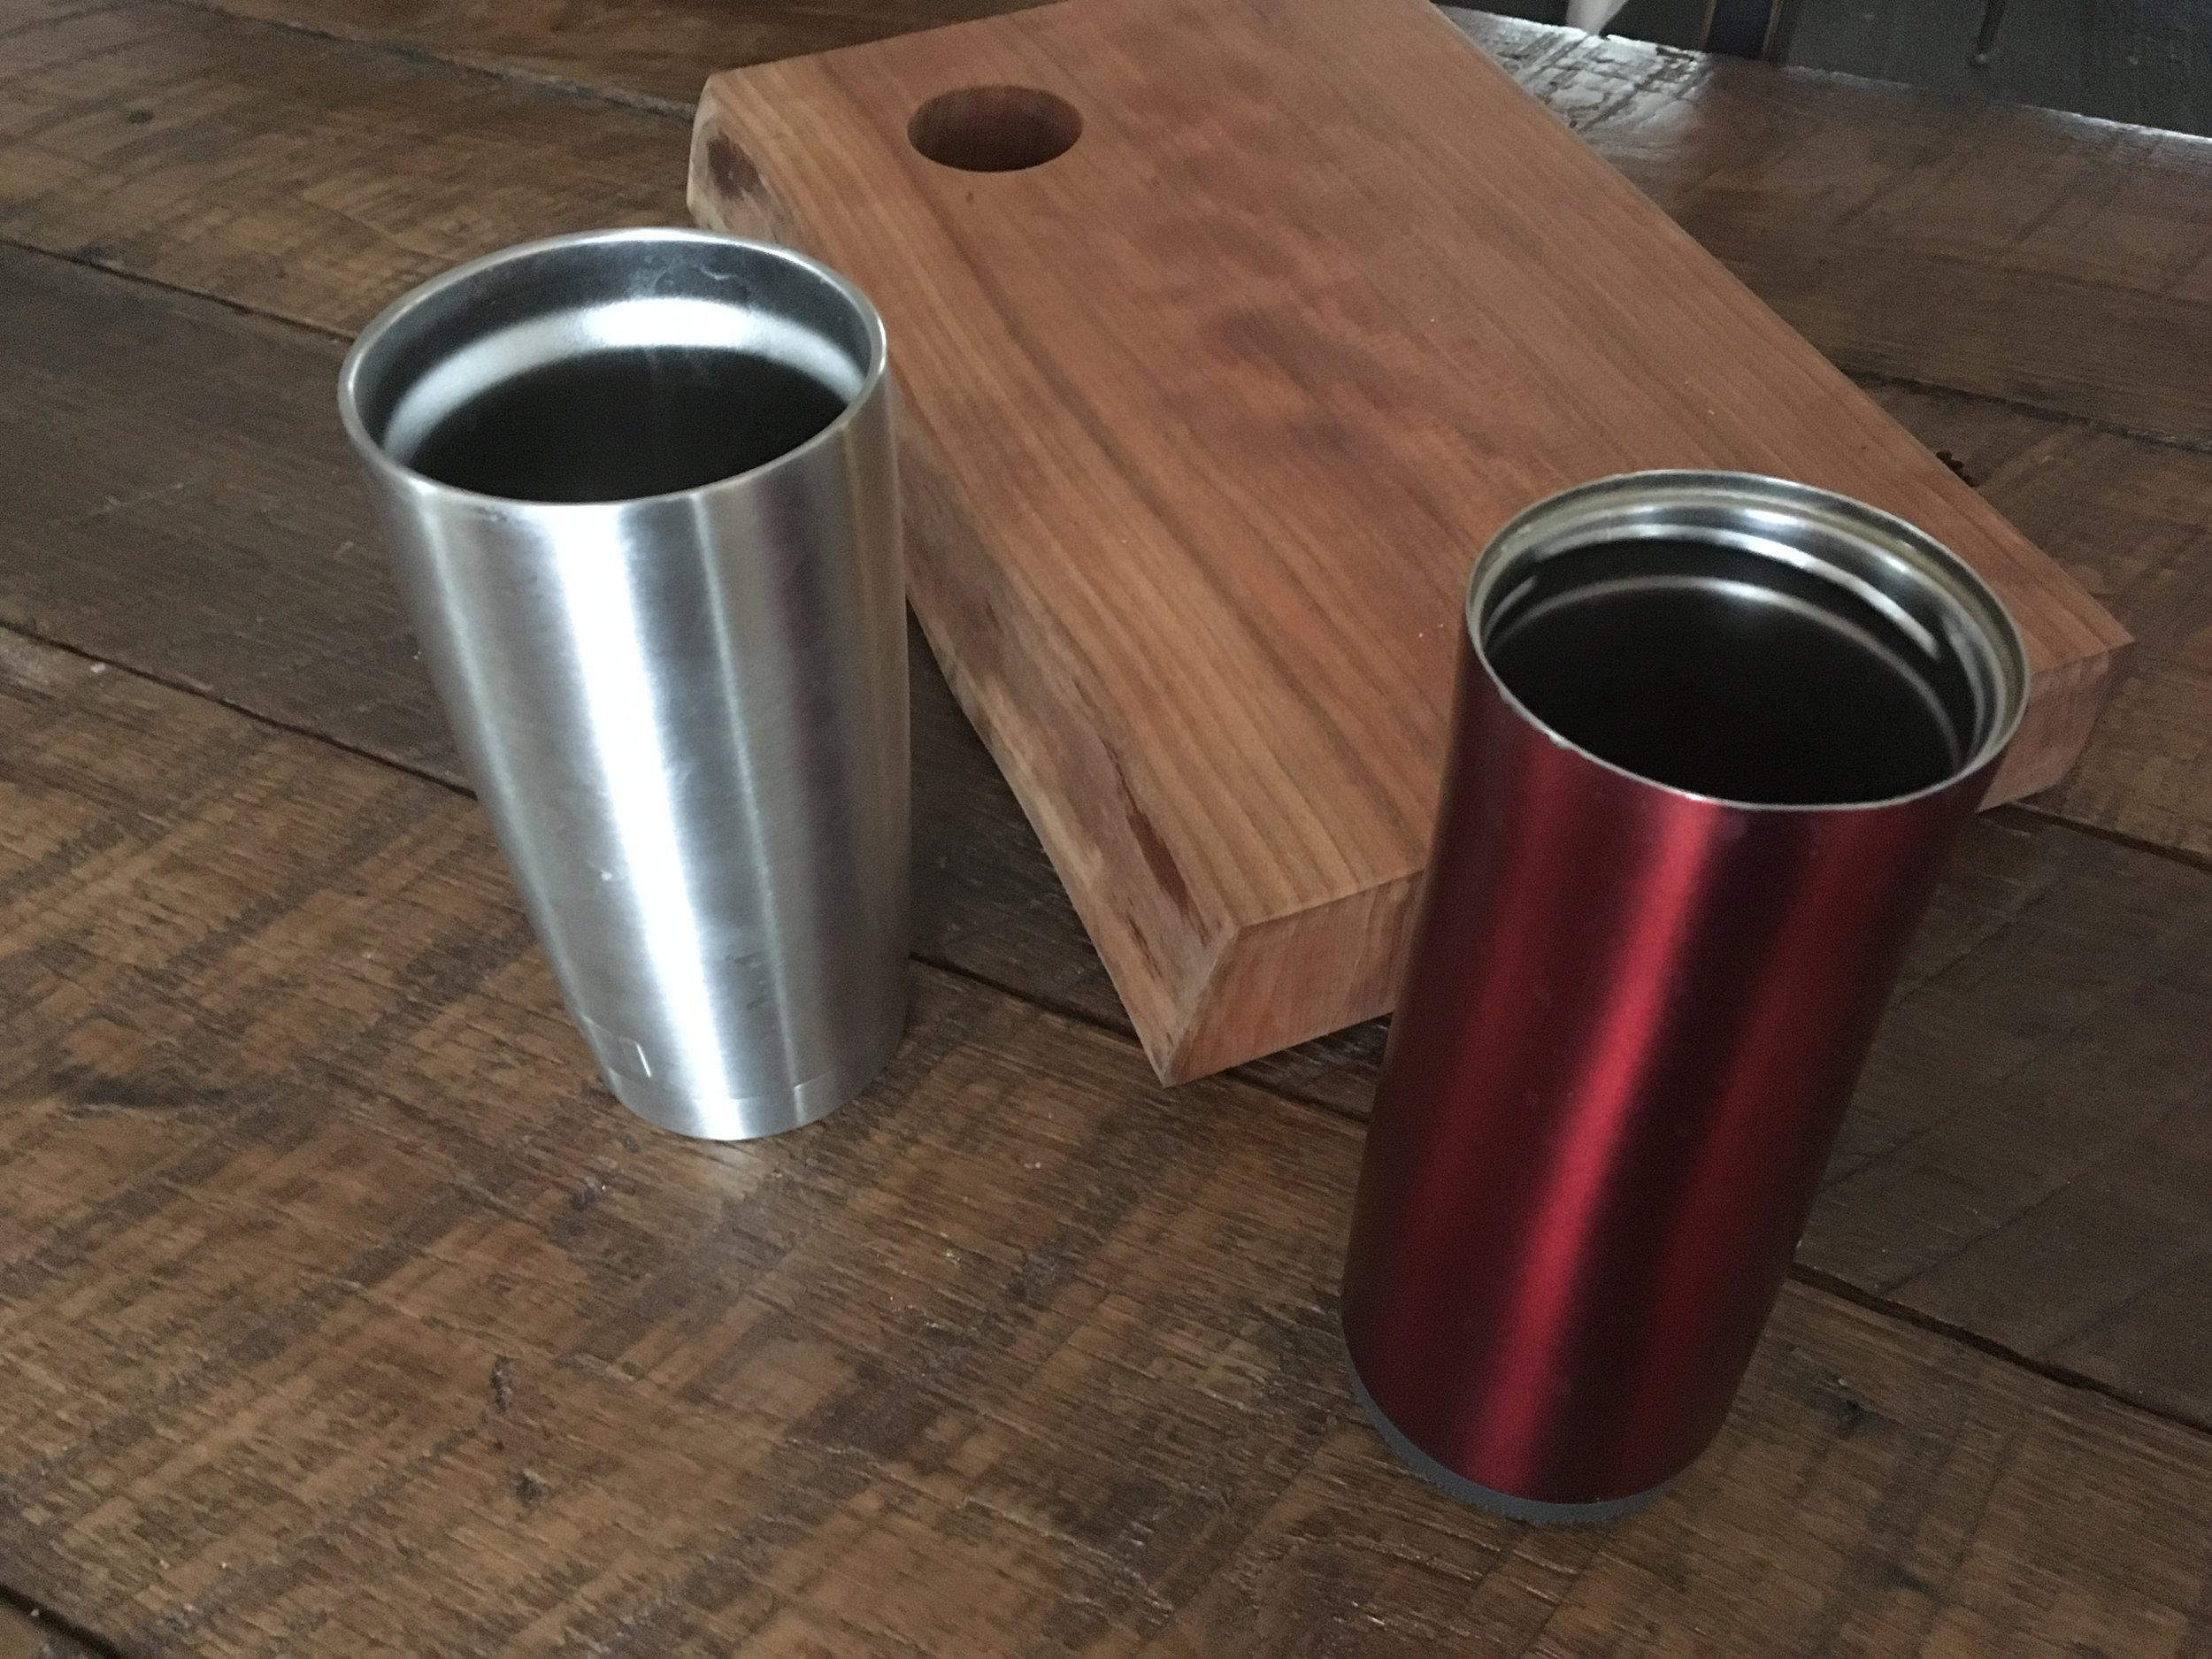 """New silver mug on the left, identified as """"Y"""" for the purposes of our experiment. Older red thermal mug on the right, identified as """"C."""""""